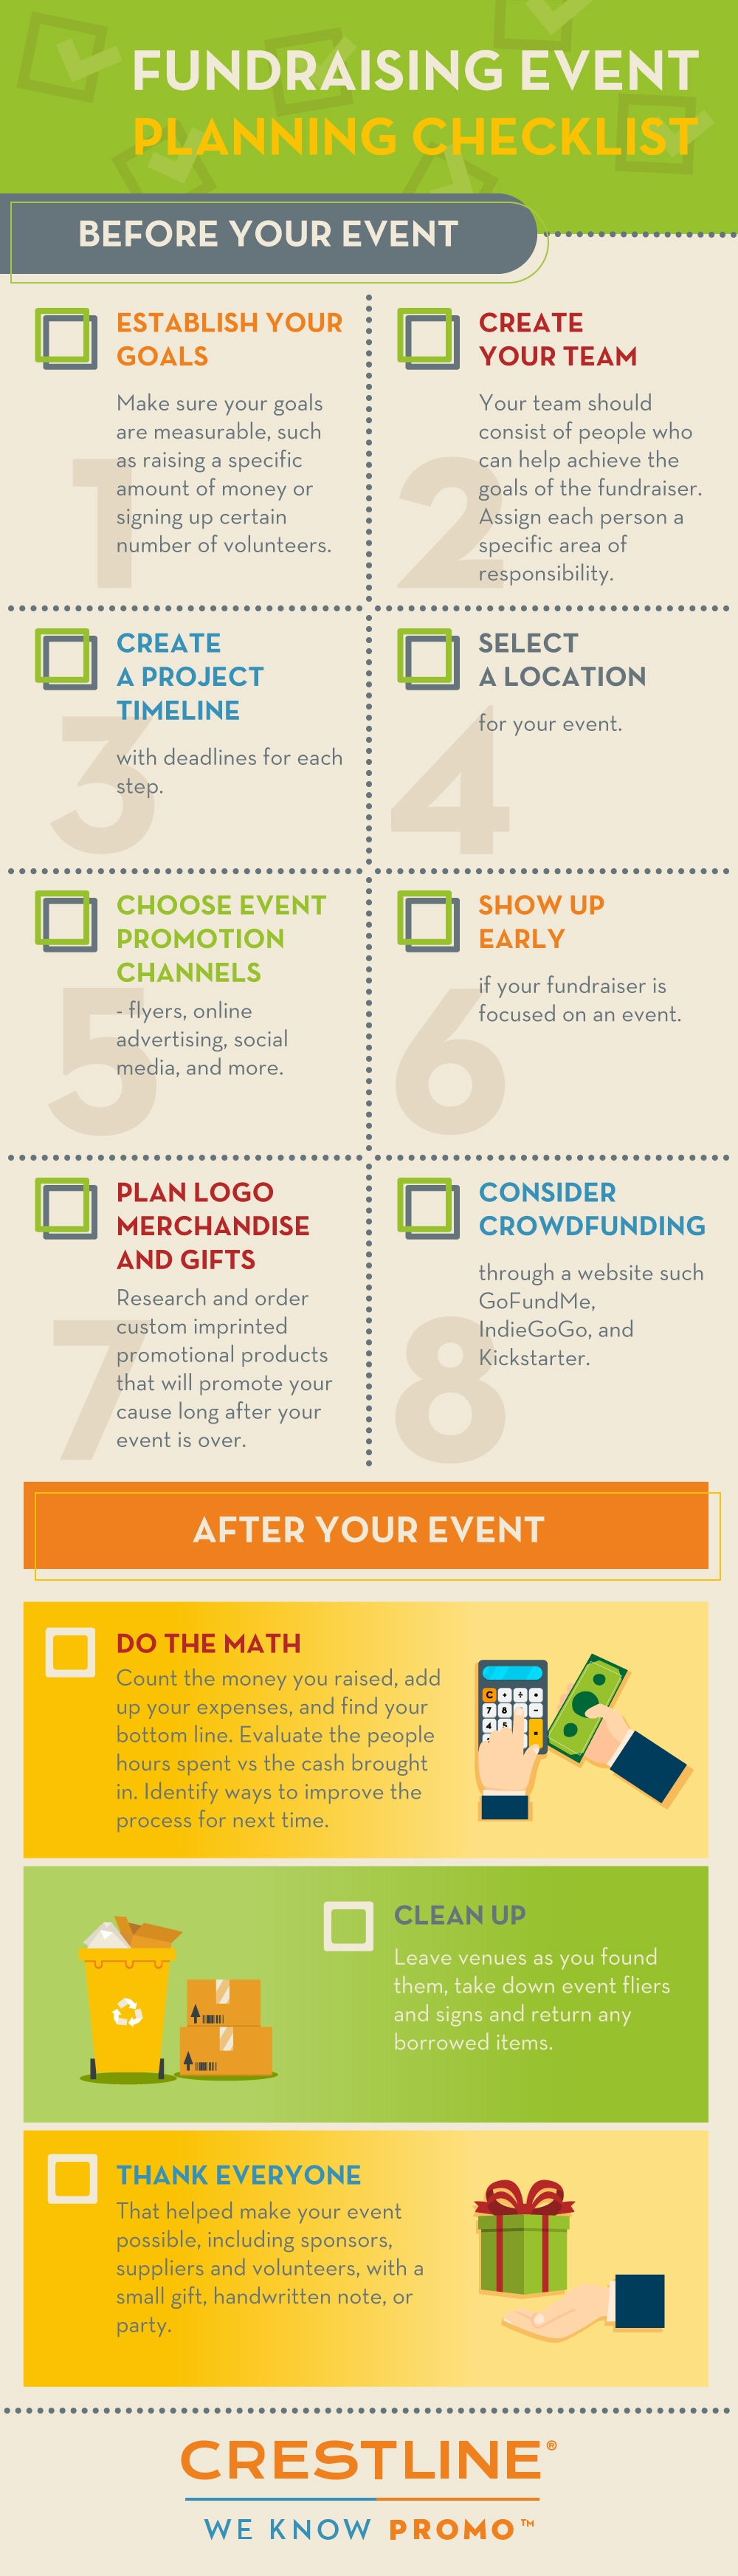 Fundraising Checklist Infographic